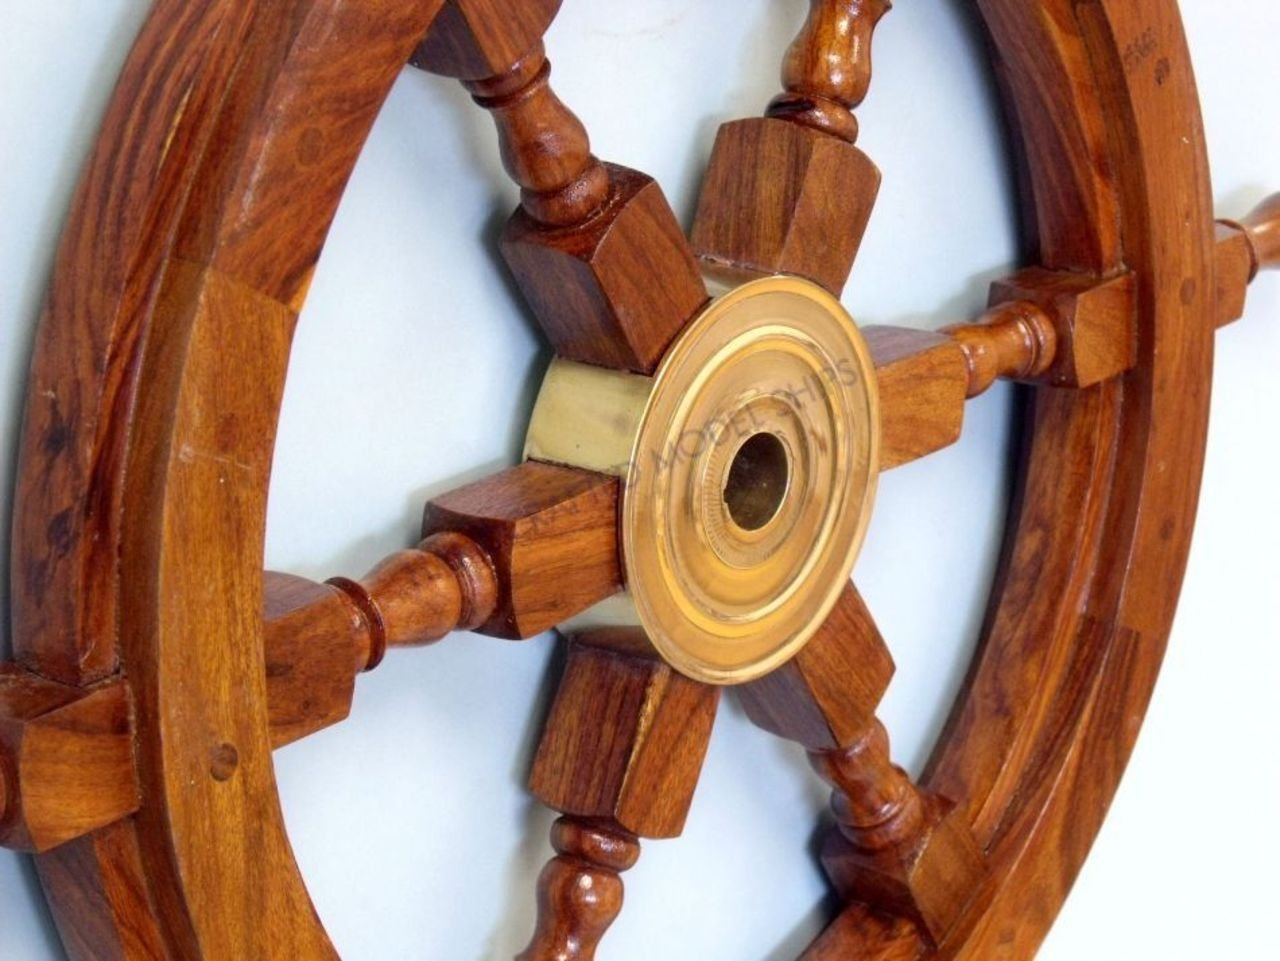 Amazon hampton nautical deluxe class wood and brass amazon hampton nautical deluxe class wood and brass decorative ship wheel 24 nautical home decoration gifts home kitchen amipublicfo Images